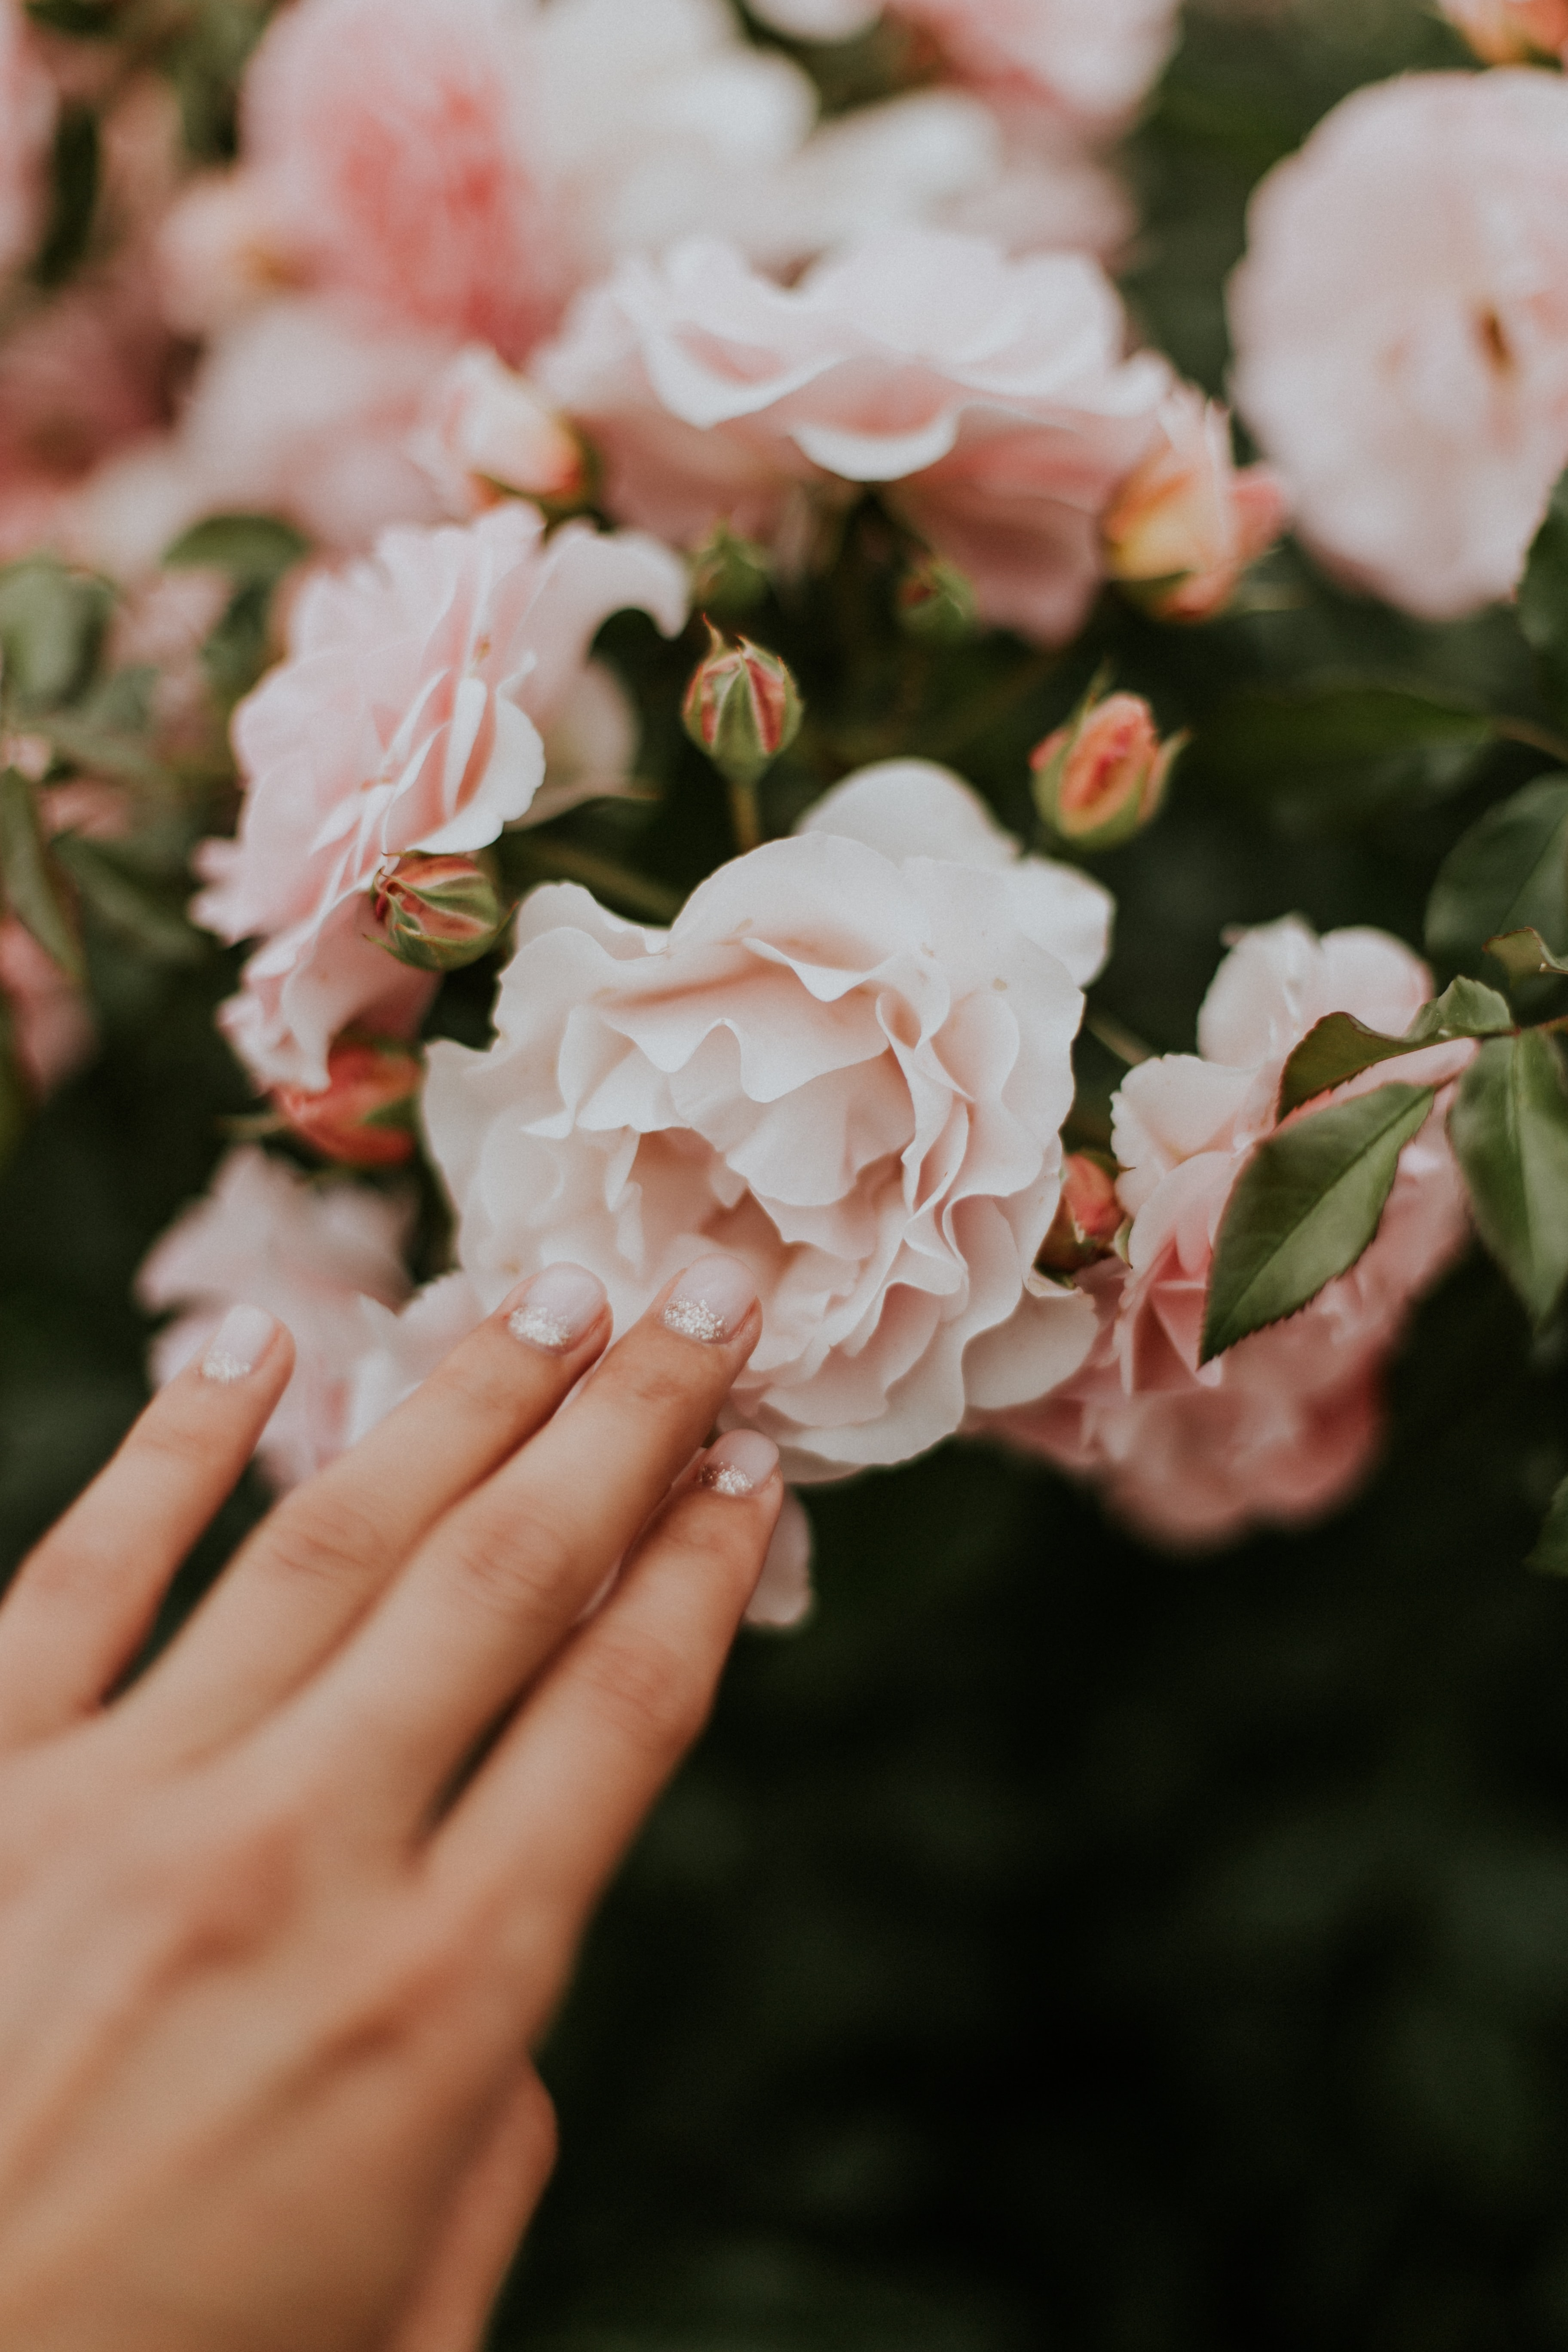 person holding white and pink clustered petaled flower